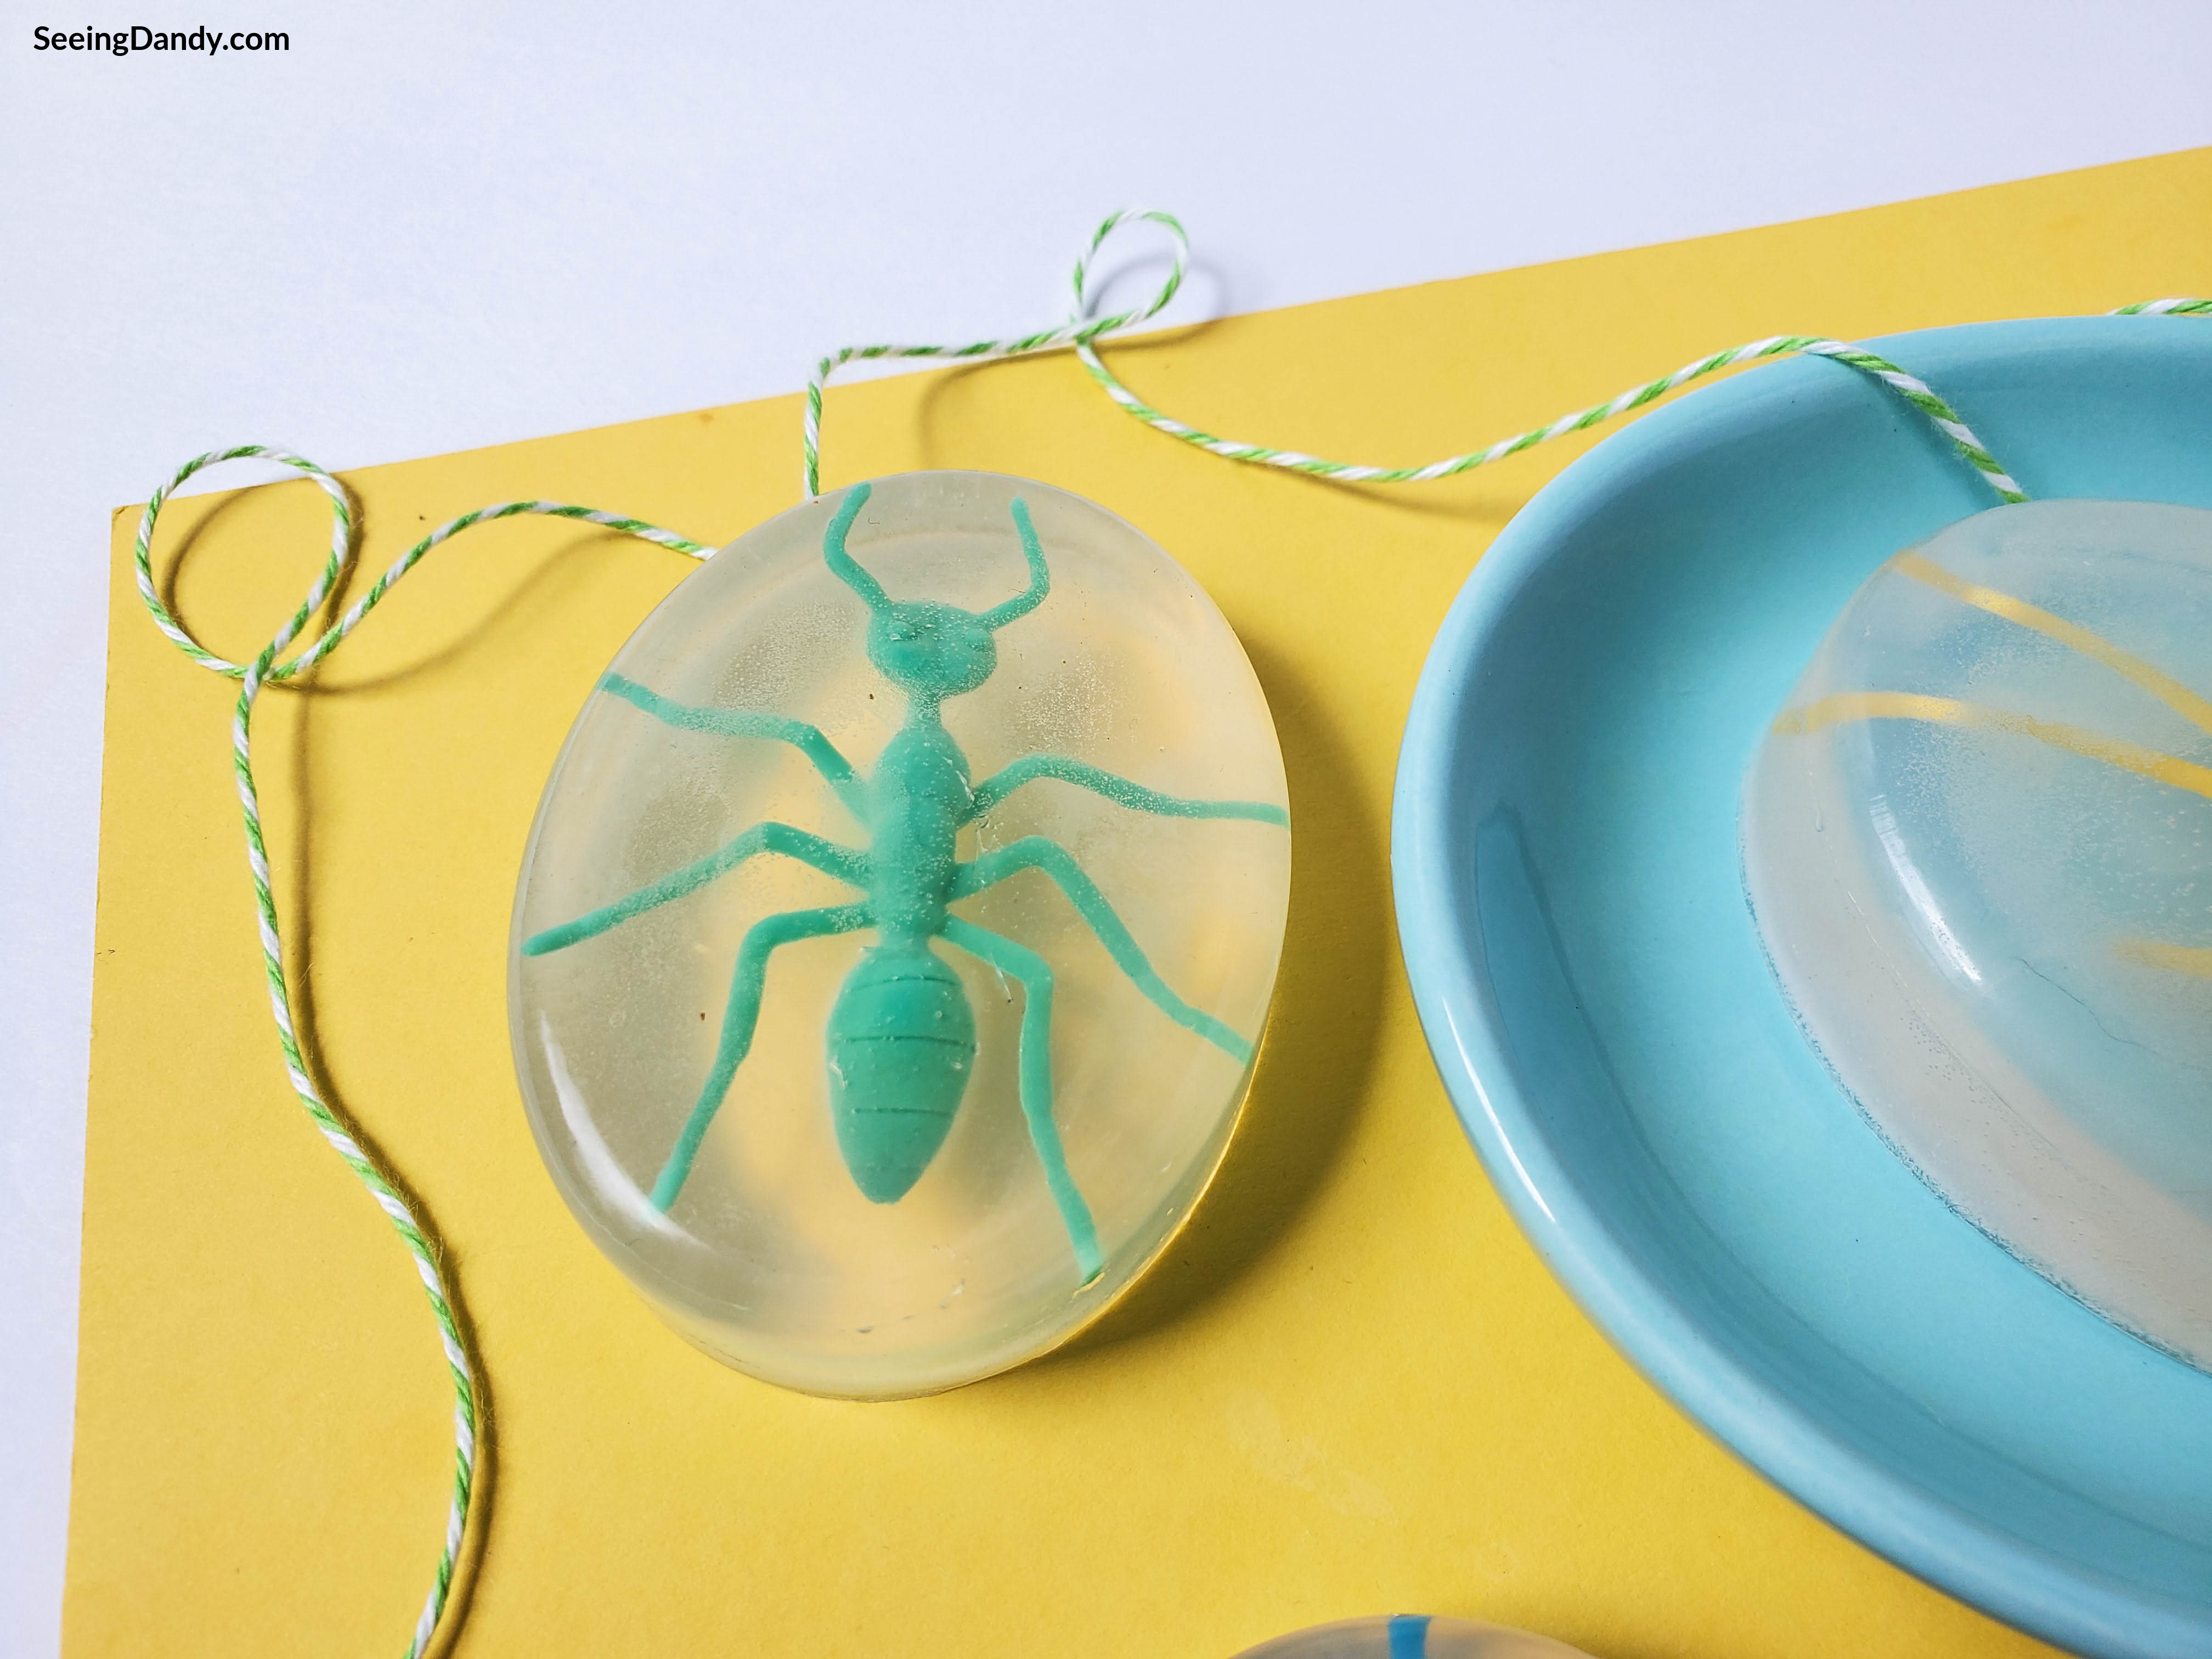 diy soap, kids crafts, green plastic ant, plastic bugs, soap making, green white stripe string, yellow paper, blue soap dish, kids bug soap